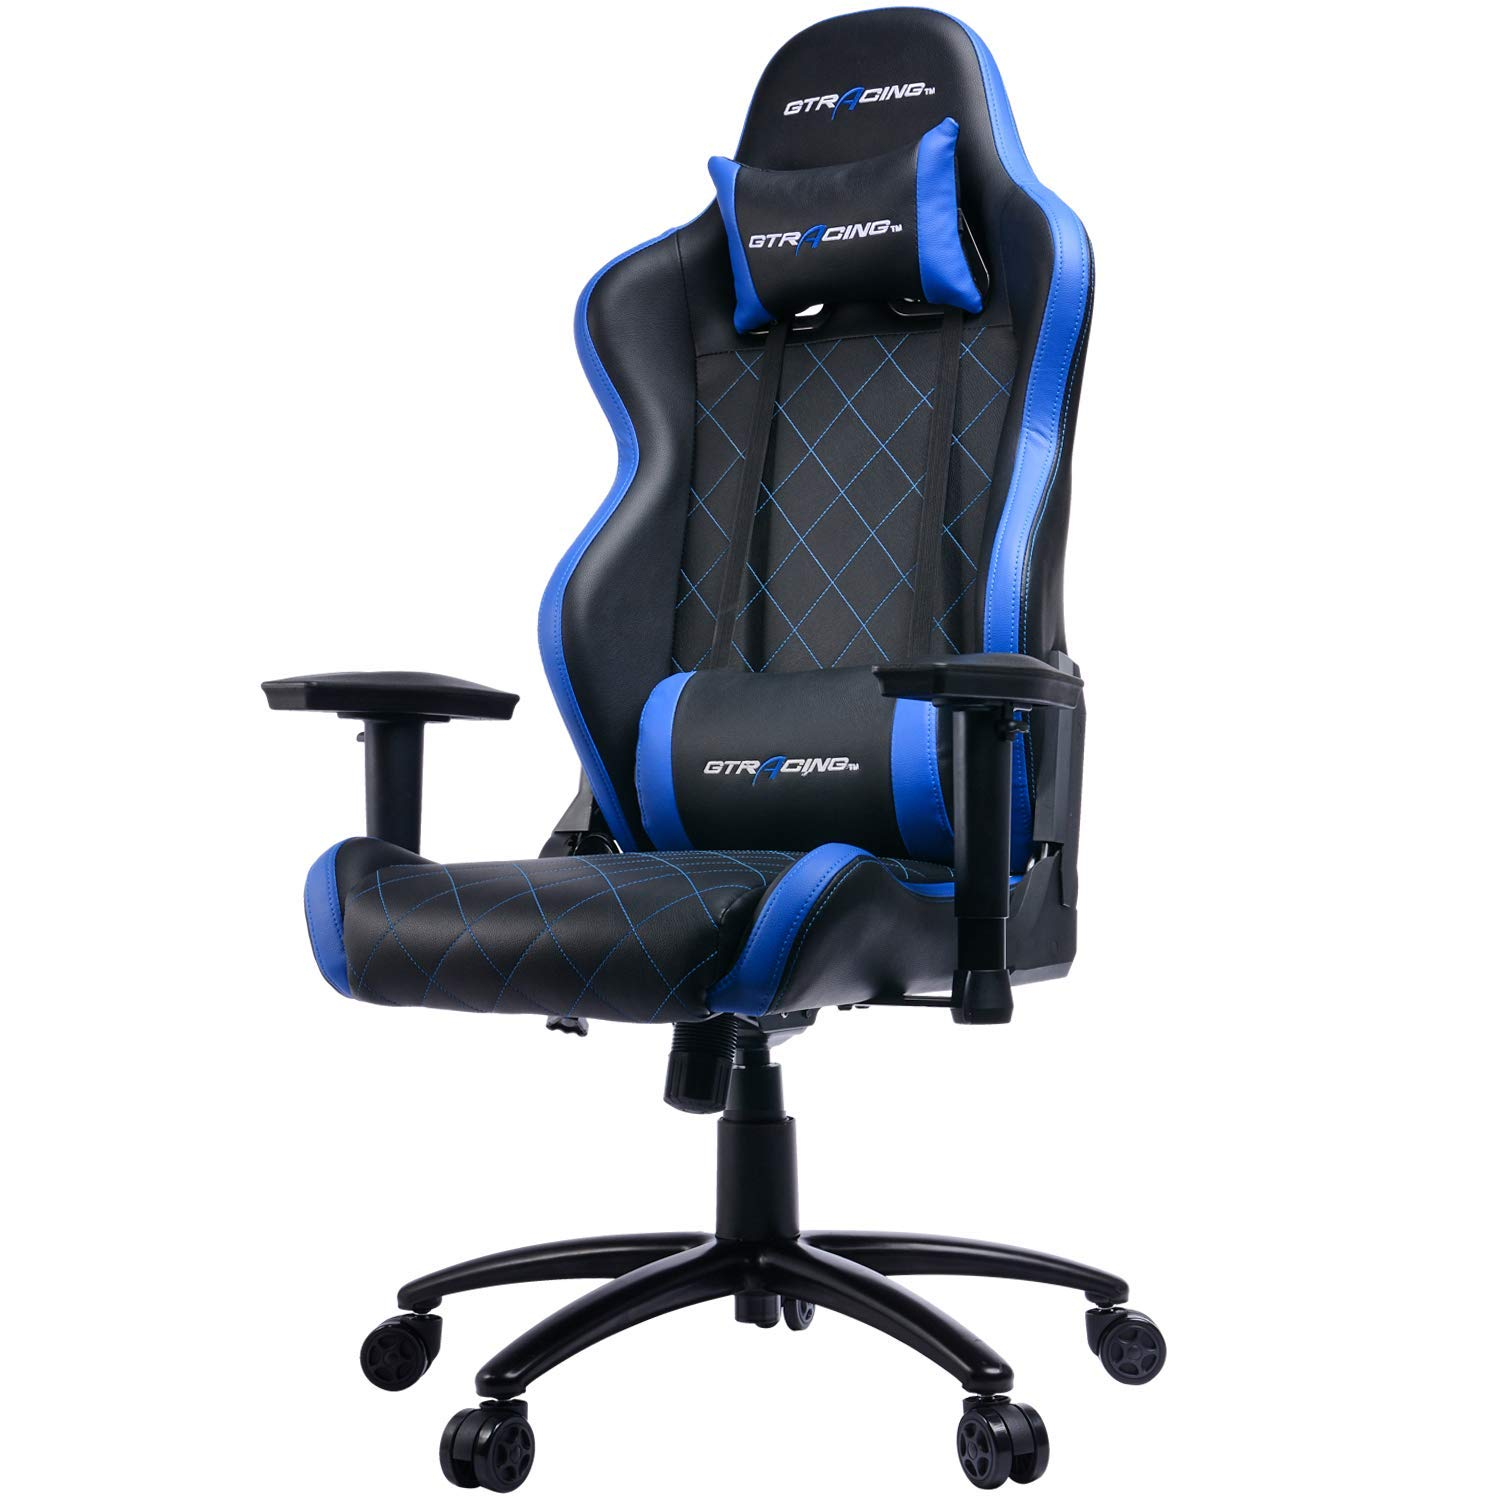 Super Gtracing Ergonomic Gaming Chair Alphanode Cool Chair Designs And Ideas Alphanodeonline